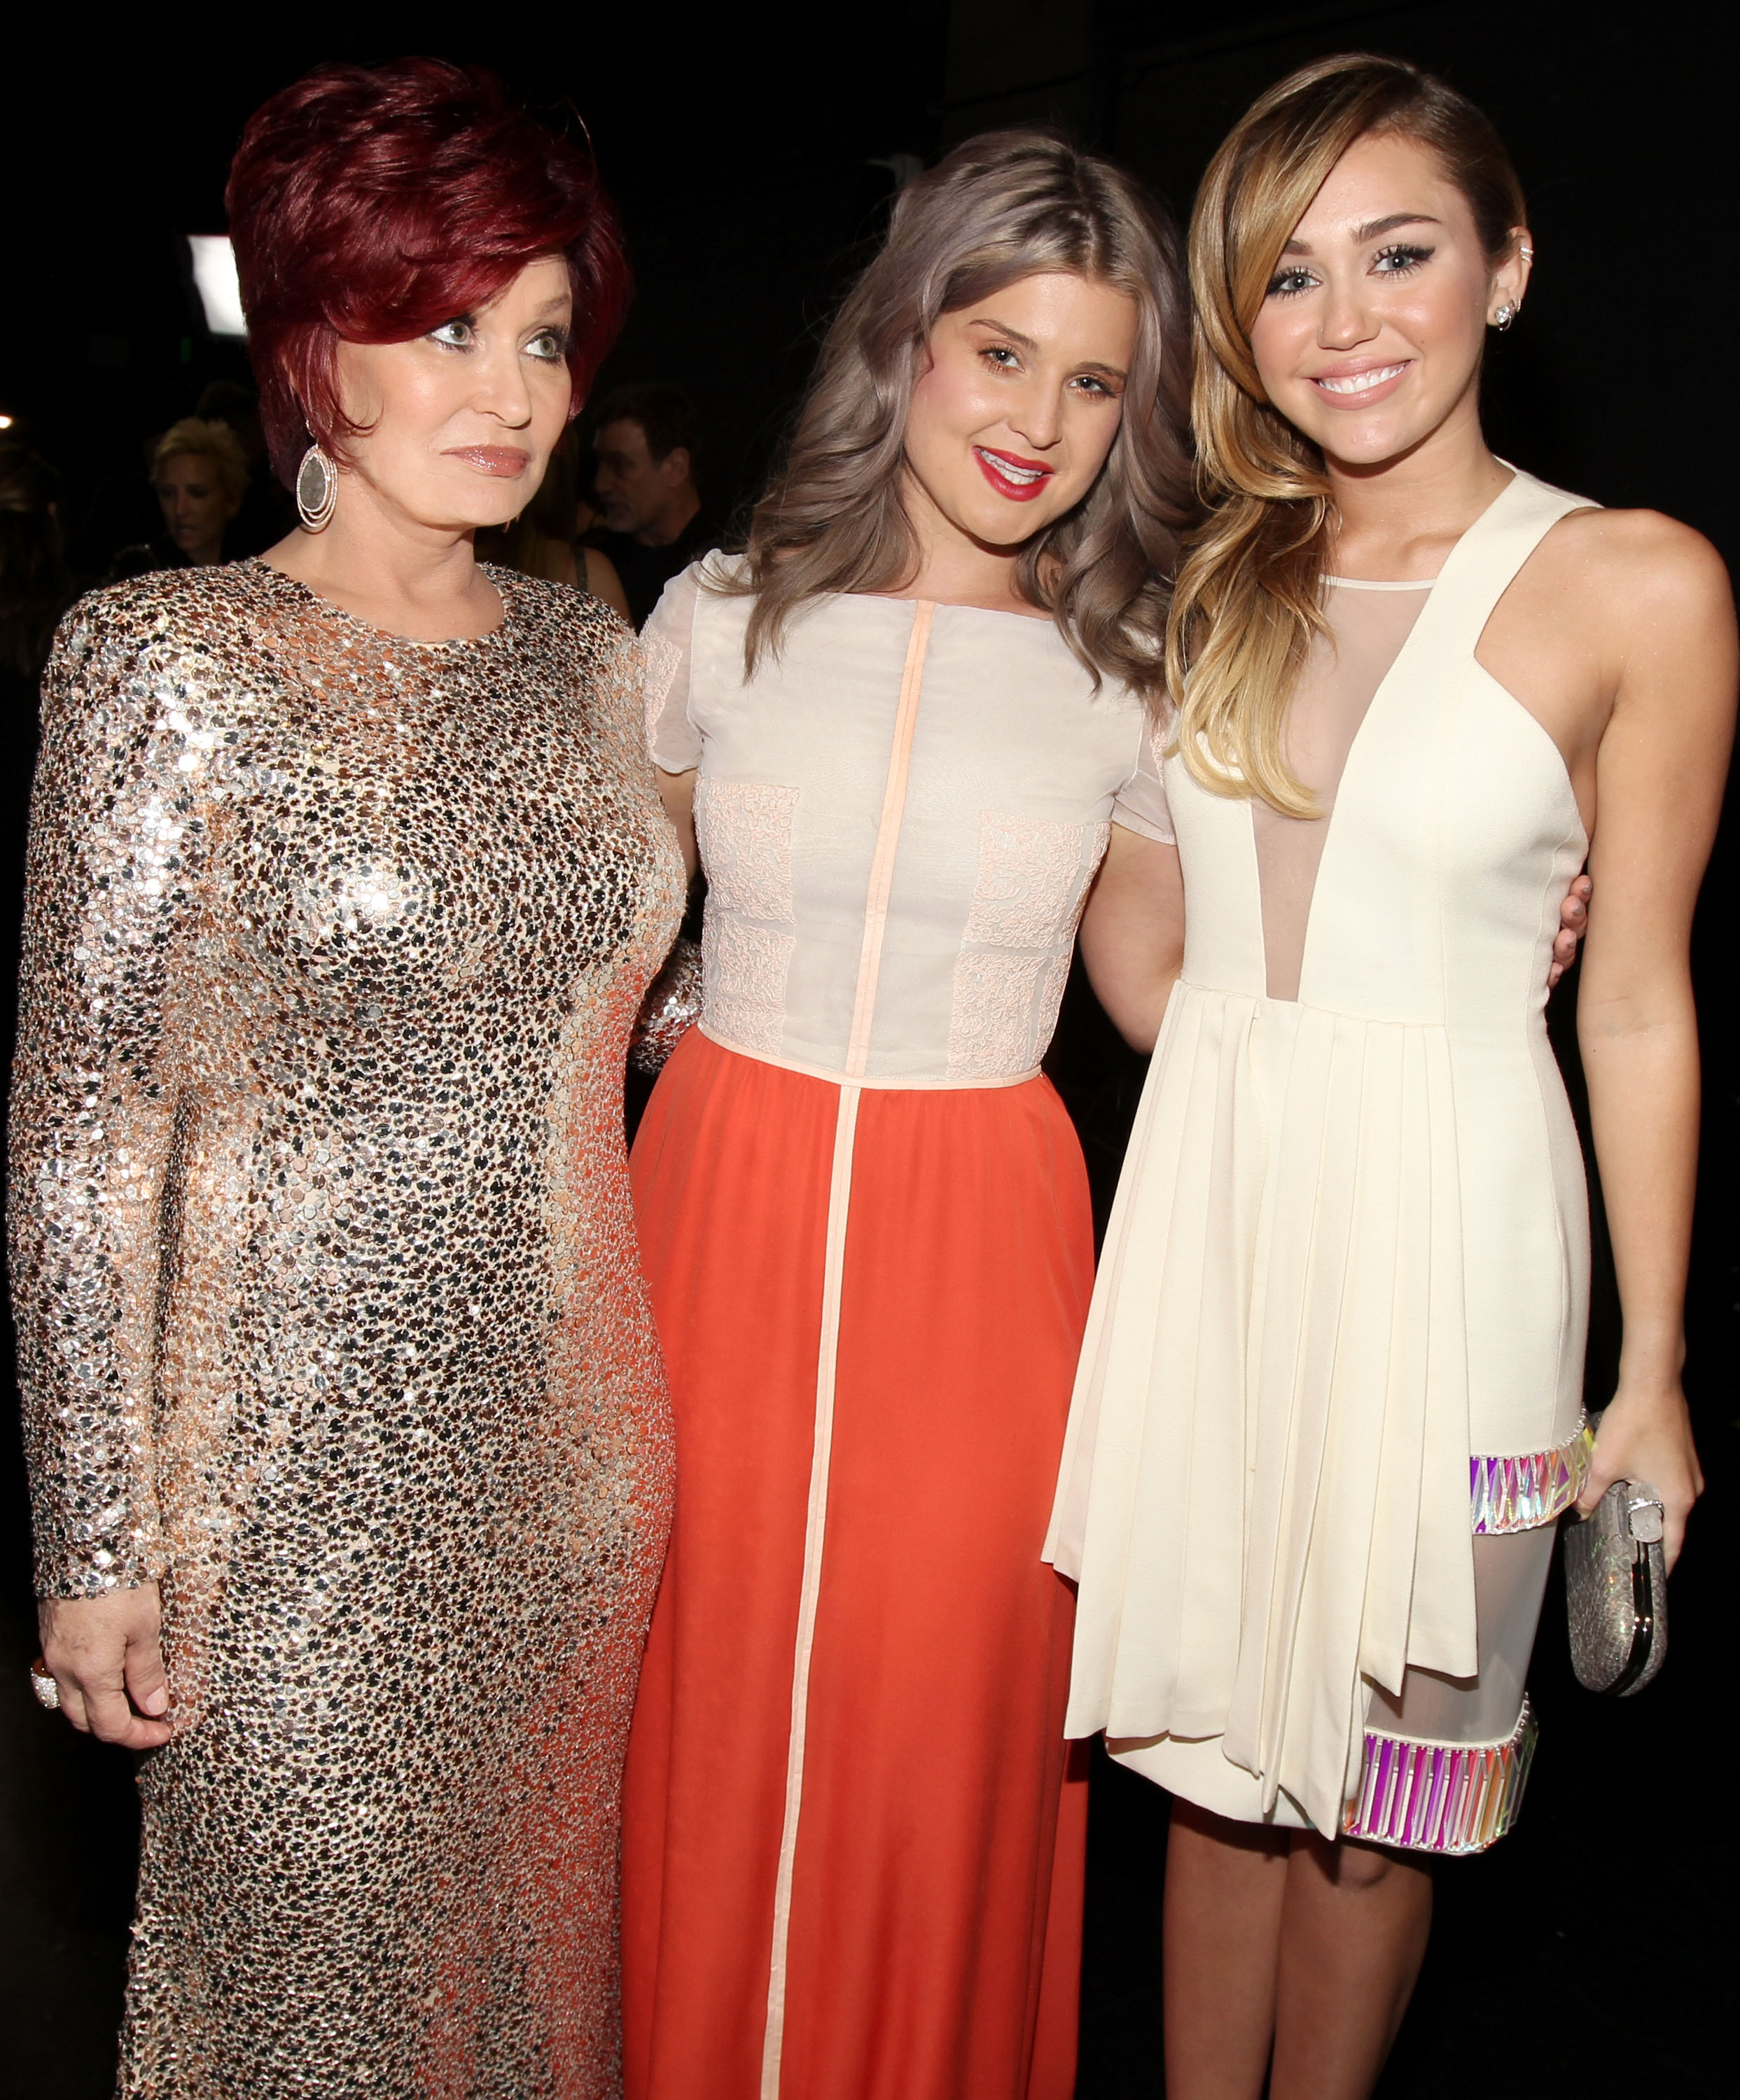 Sharon, Kelly, and Miley